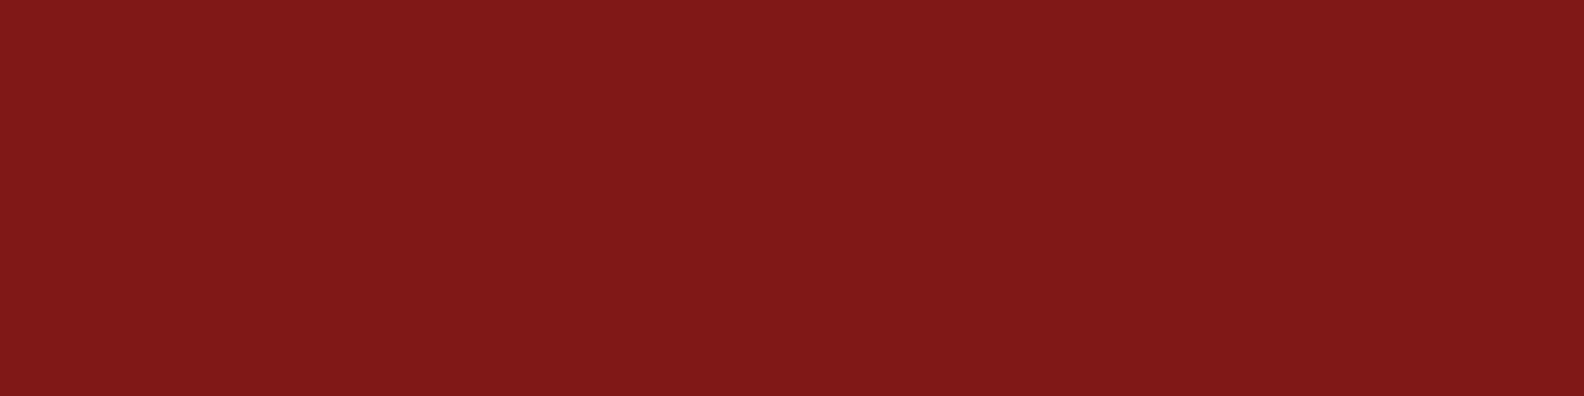 1584x396 Falu Red Solid Color Background